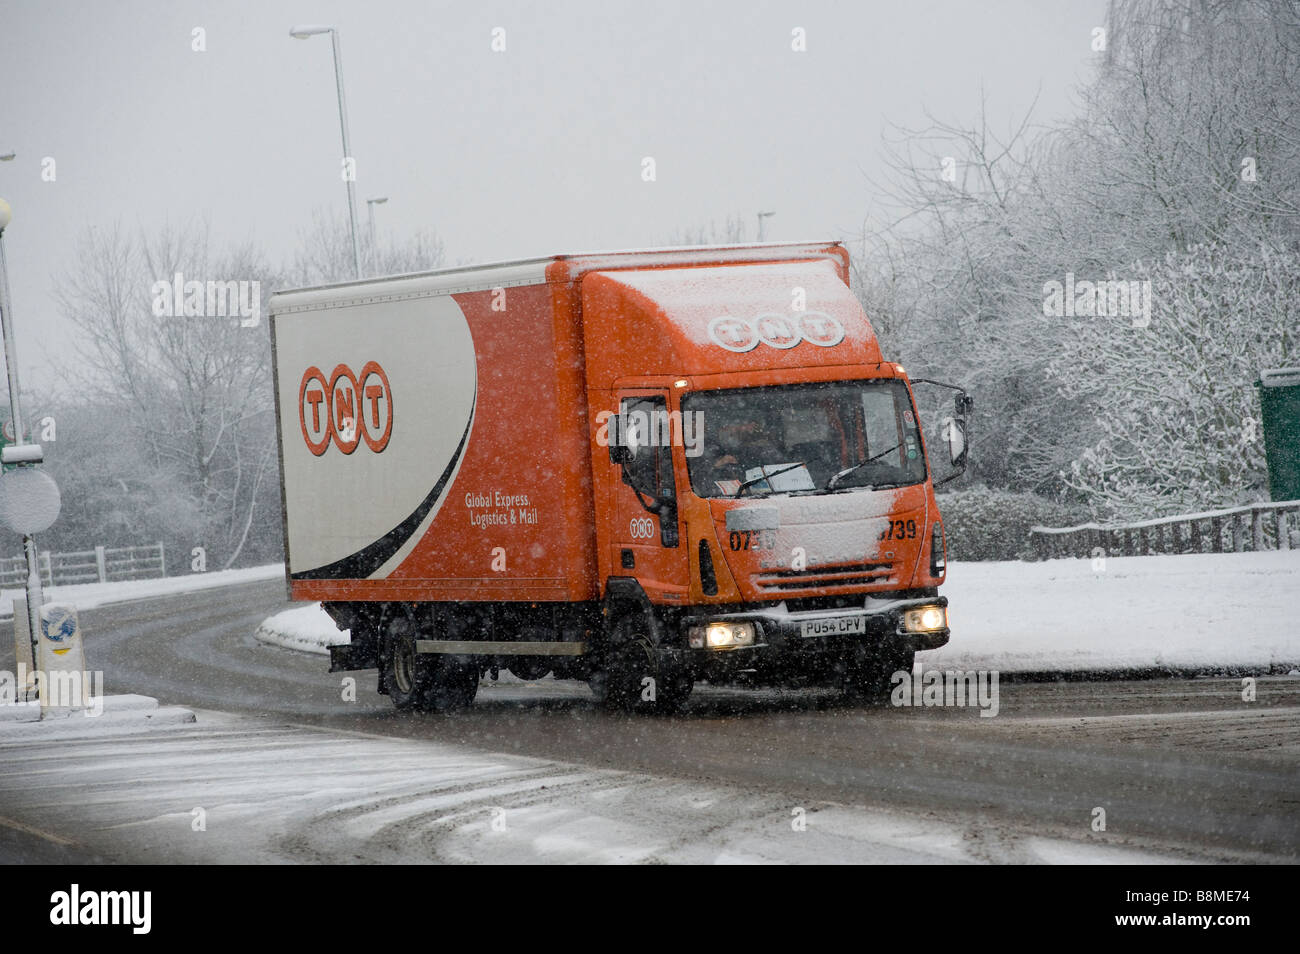 Driving a TNT delivery lorry through snow and ice to make deliveries on a winters day in England - Stock Image